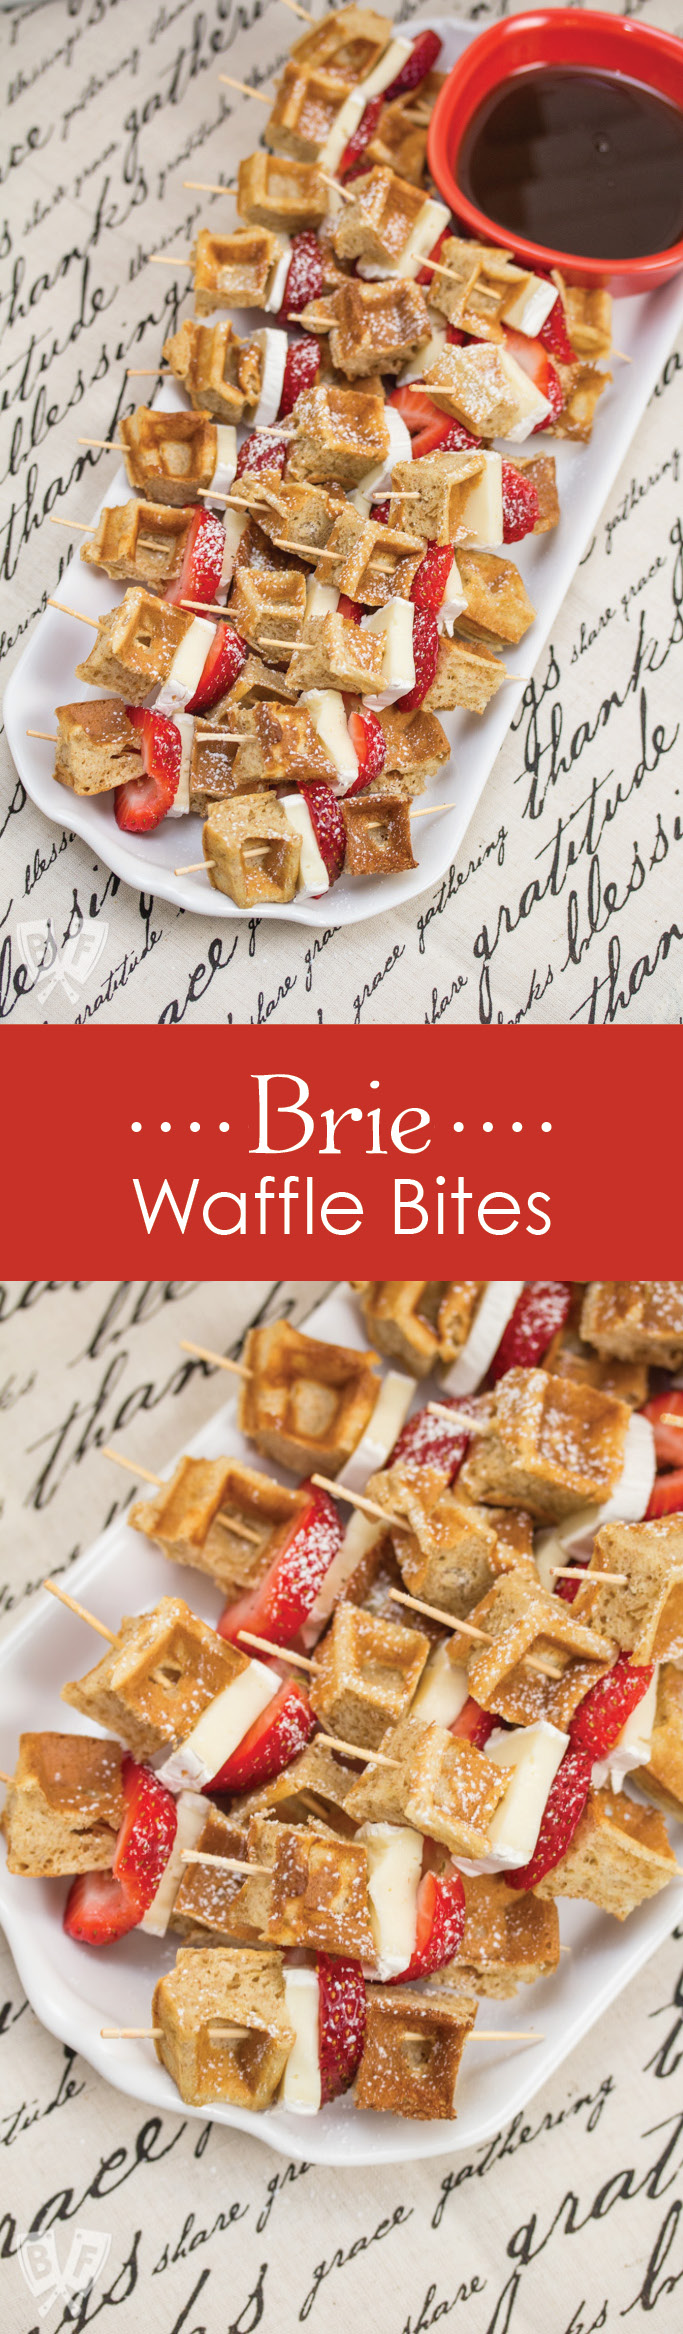 Brie Waffle Bites: Bring your brunch game to the next level with these easy yet elegant bites + a review of my new favorite serving pieces from REVOL. #ad